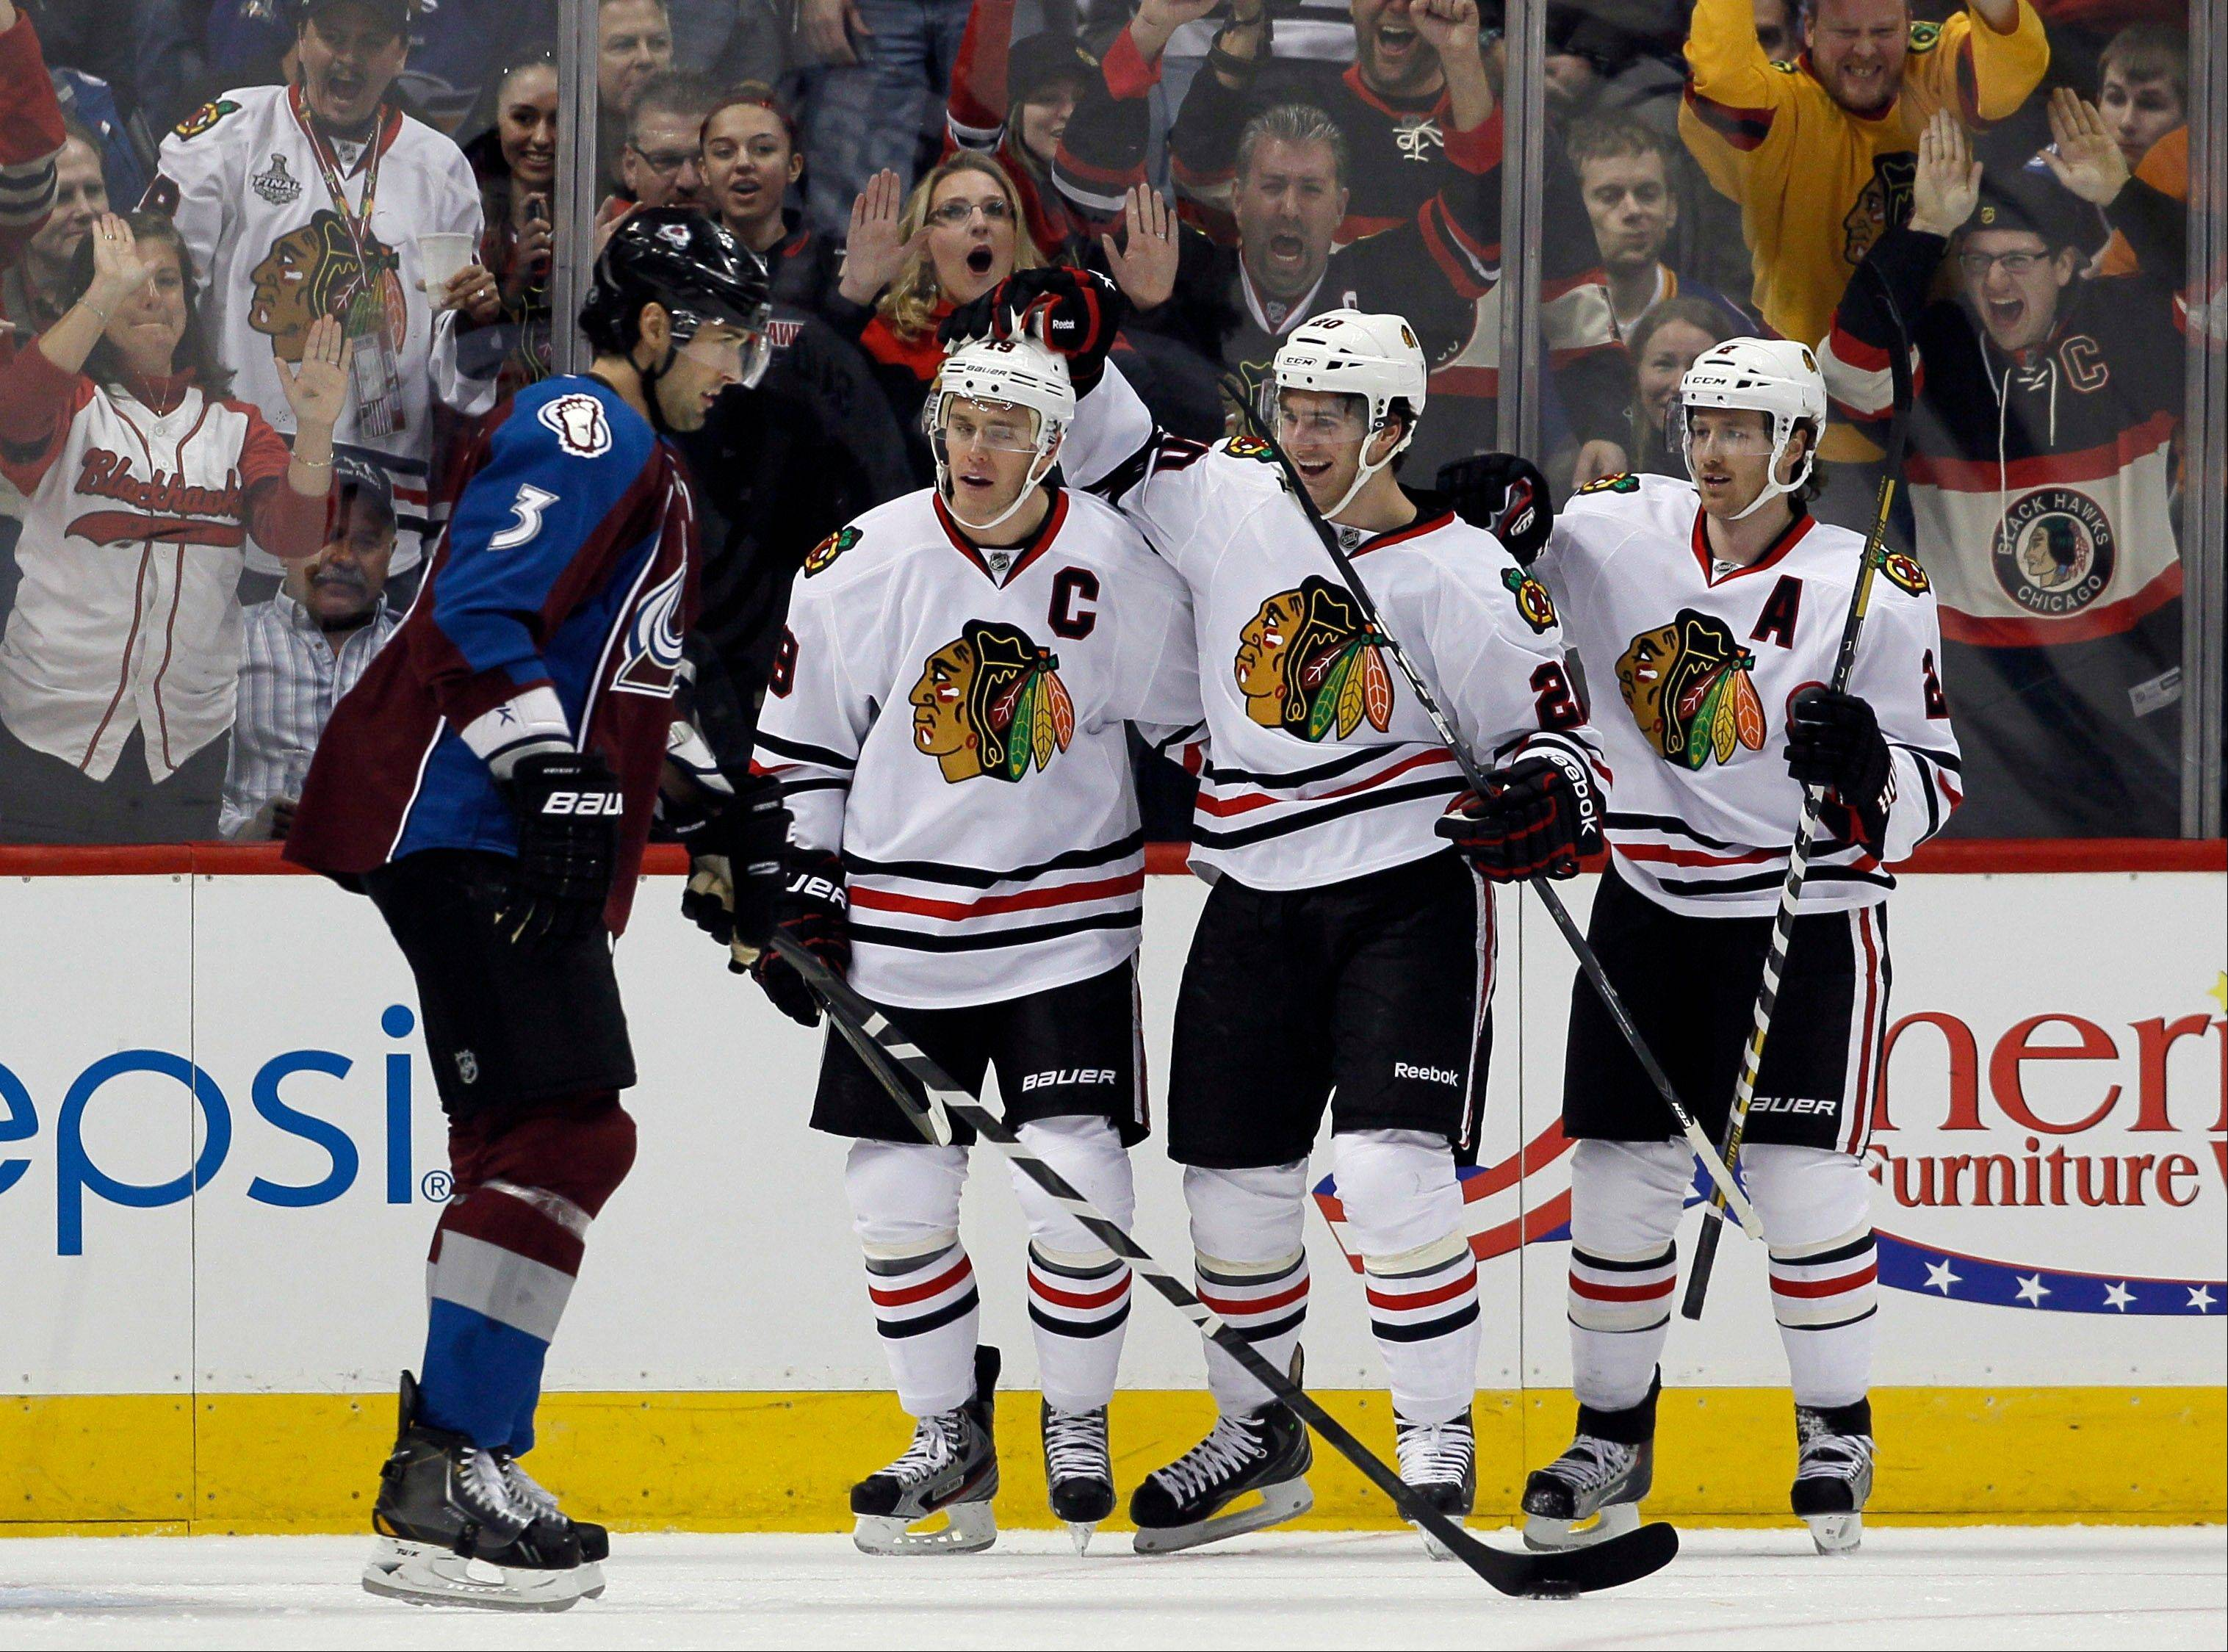 As Colorado Avalanche defenseman Ryan O'Byrne, left, looks on, Chicago Blackhawks center Jonathan Toews, second from left, is congratulated after scoring a goal by teammates Brandon Saad, third from left, and Duncan Keith in the first period.